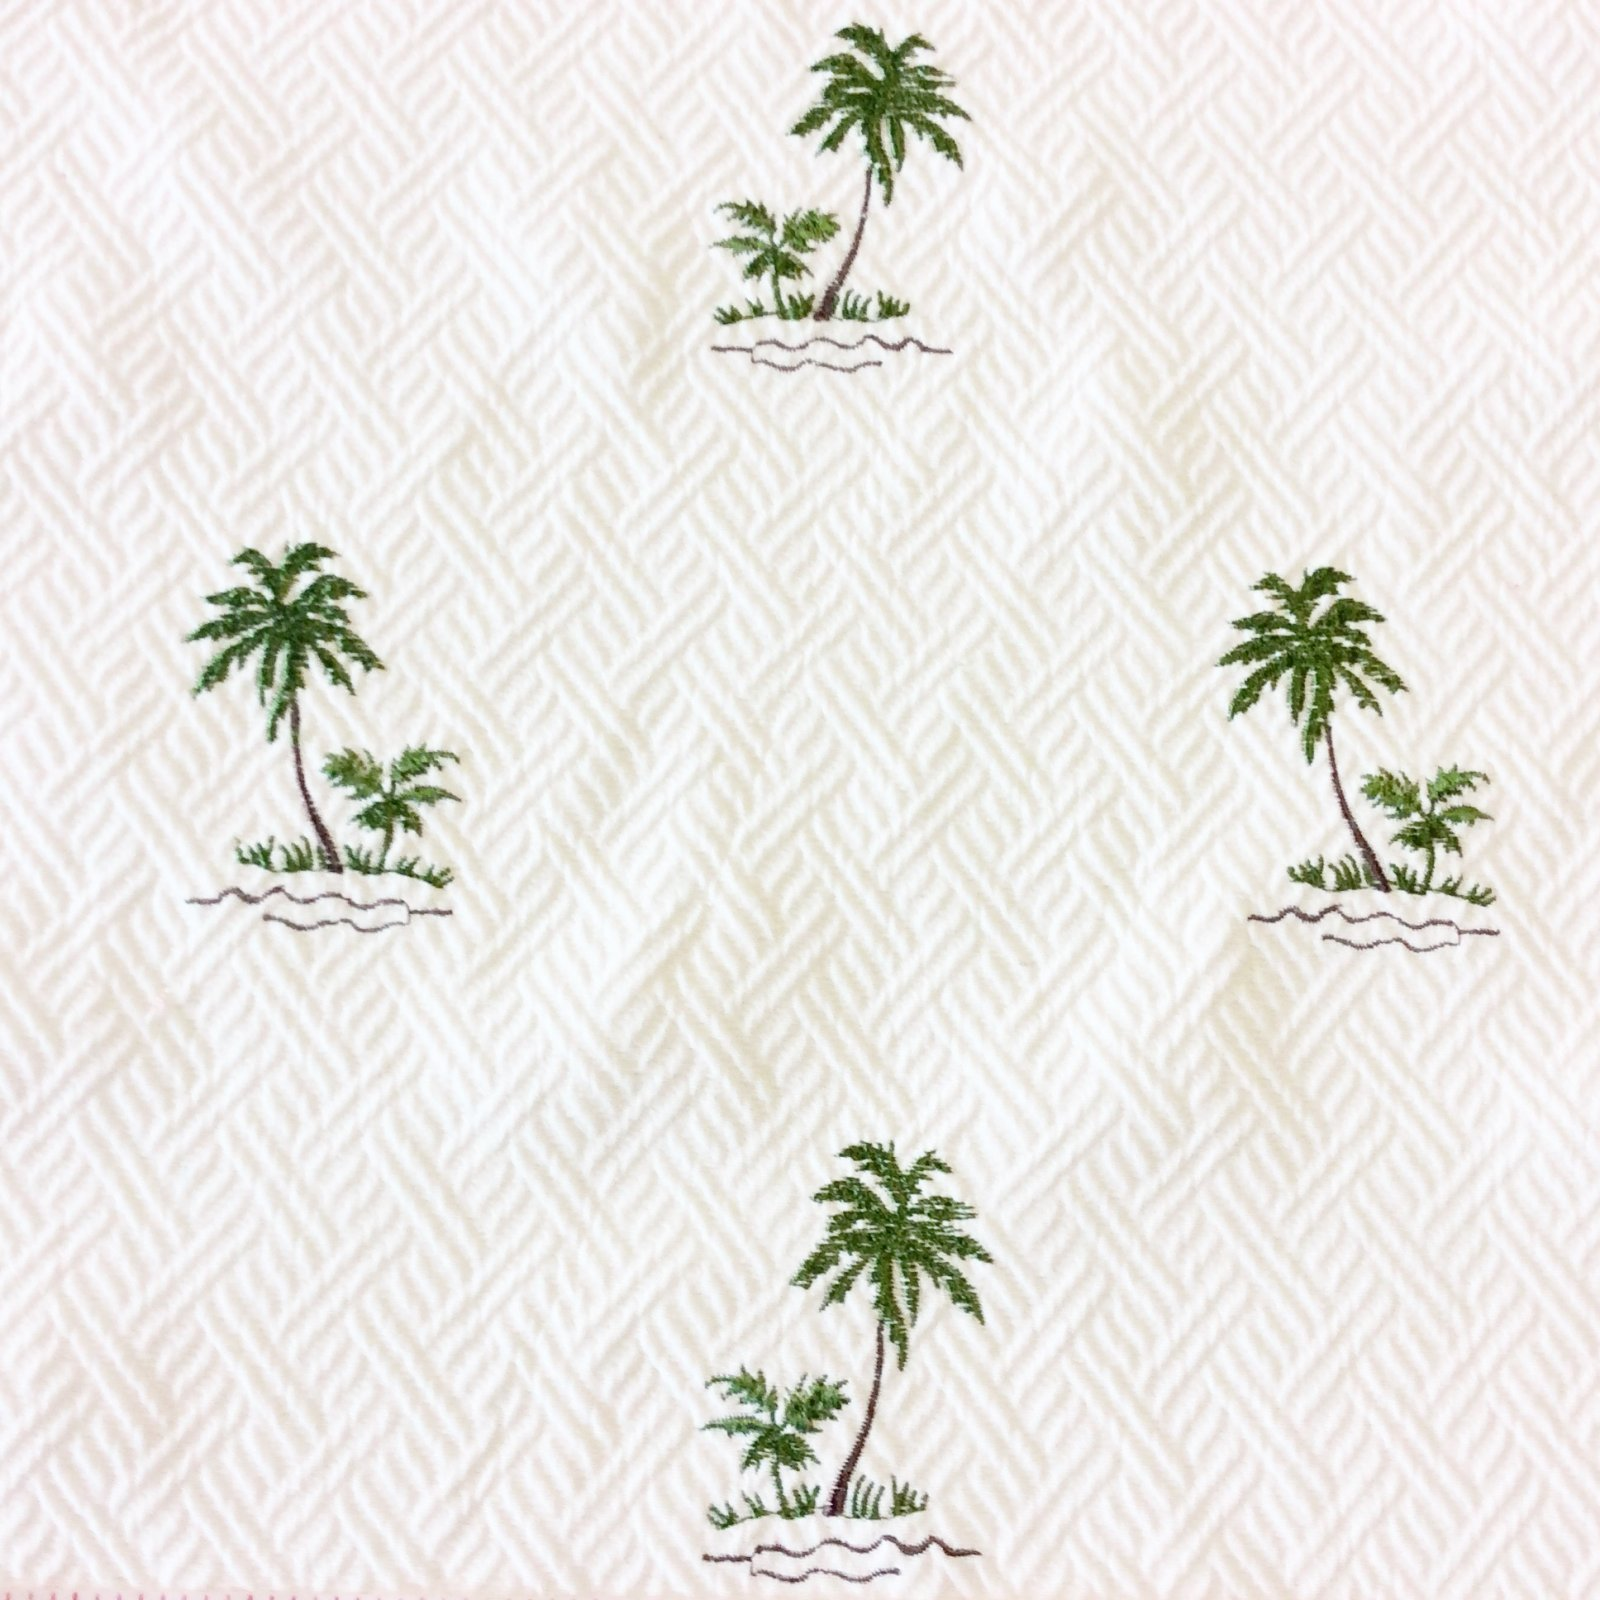 Tommy Bahama Heavy Cotton Fabric Palm Trees Embroidered White Matelasse Upholstery Fabric LHD239